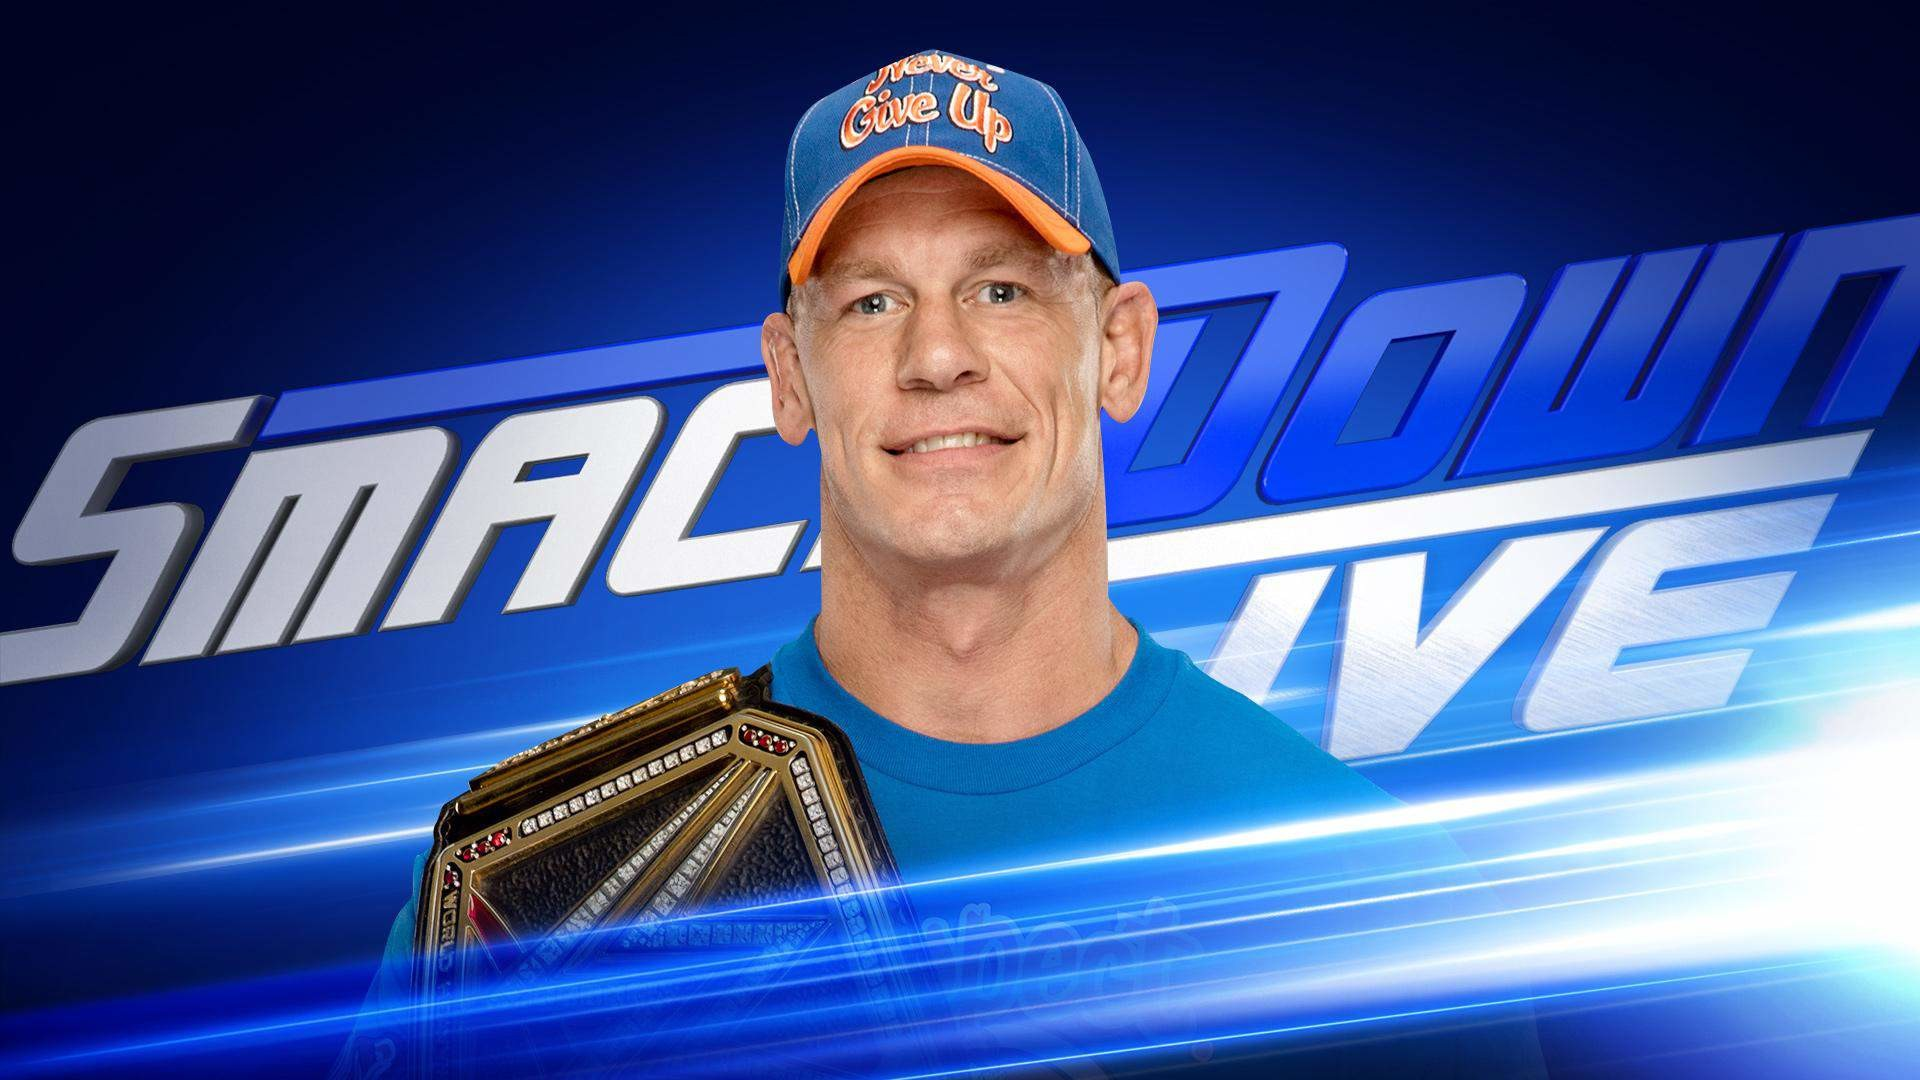 WWE John Cena Wallpape...